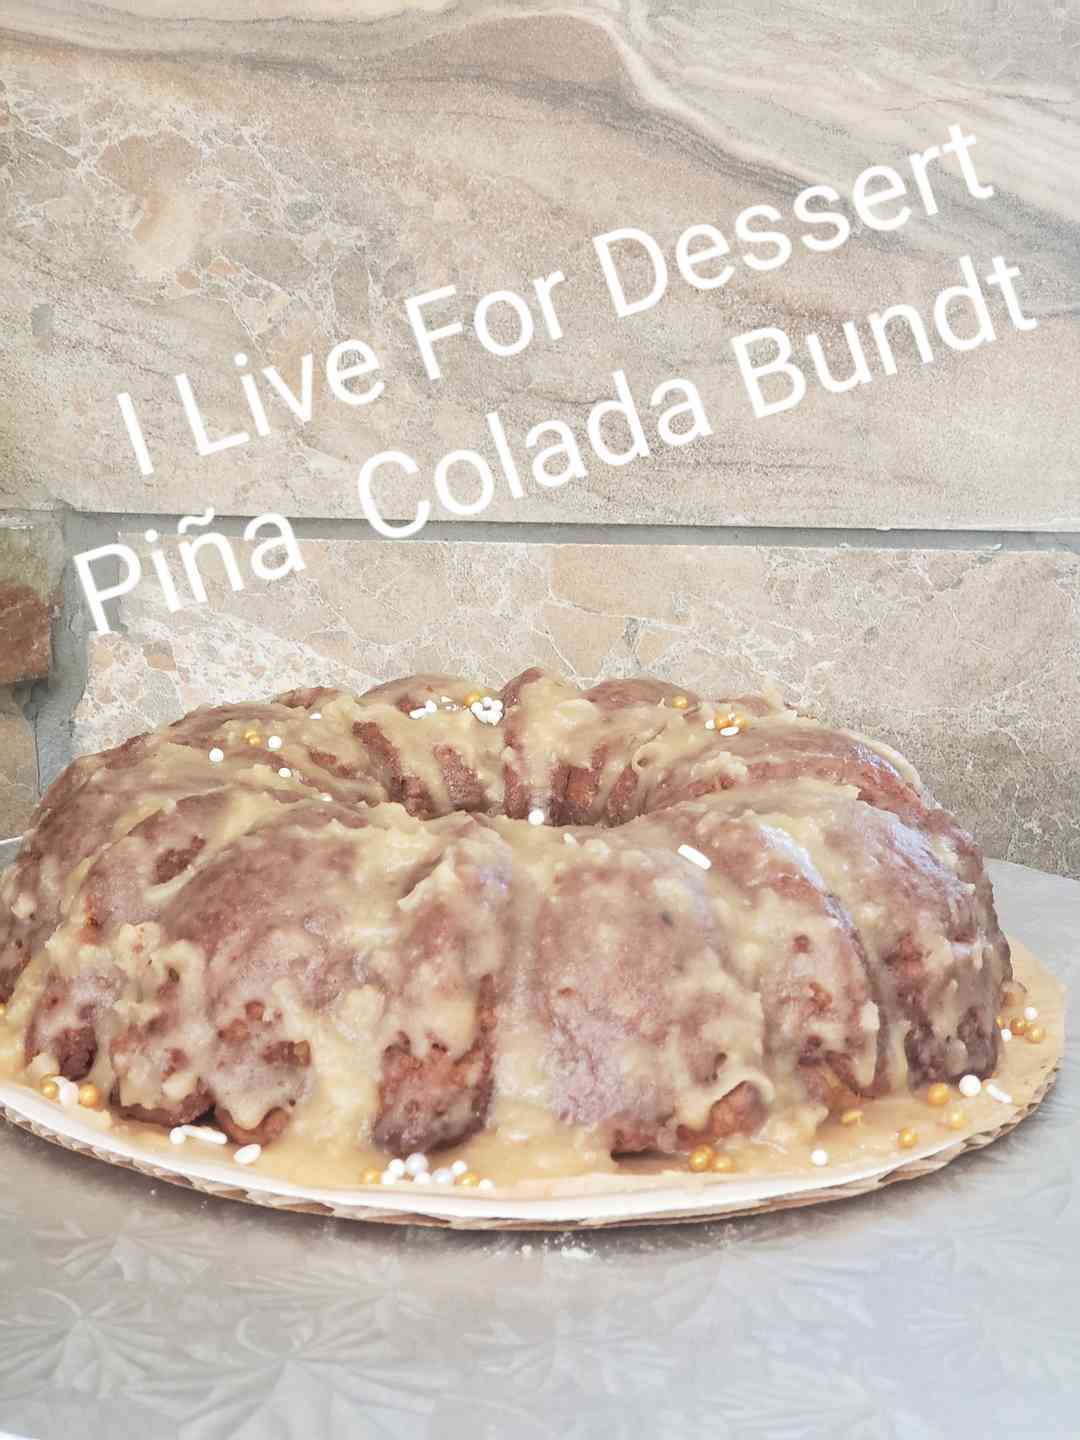 Pina Colada Bundt 3 Day Notice